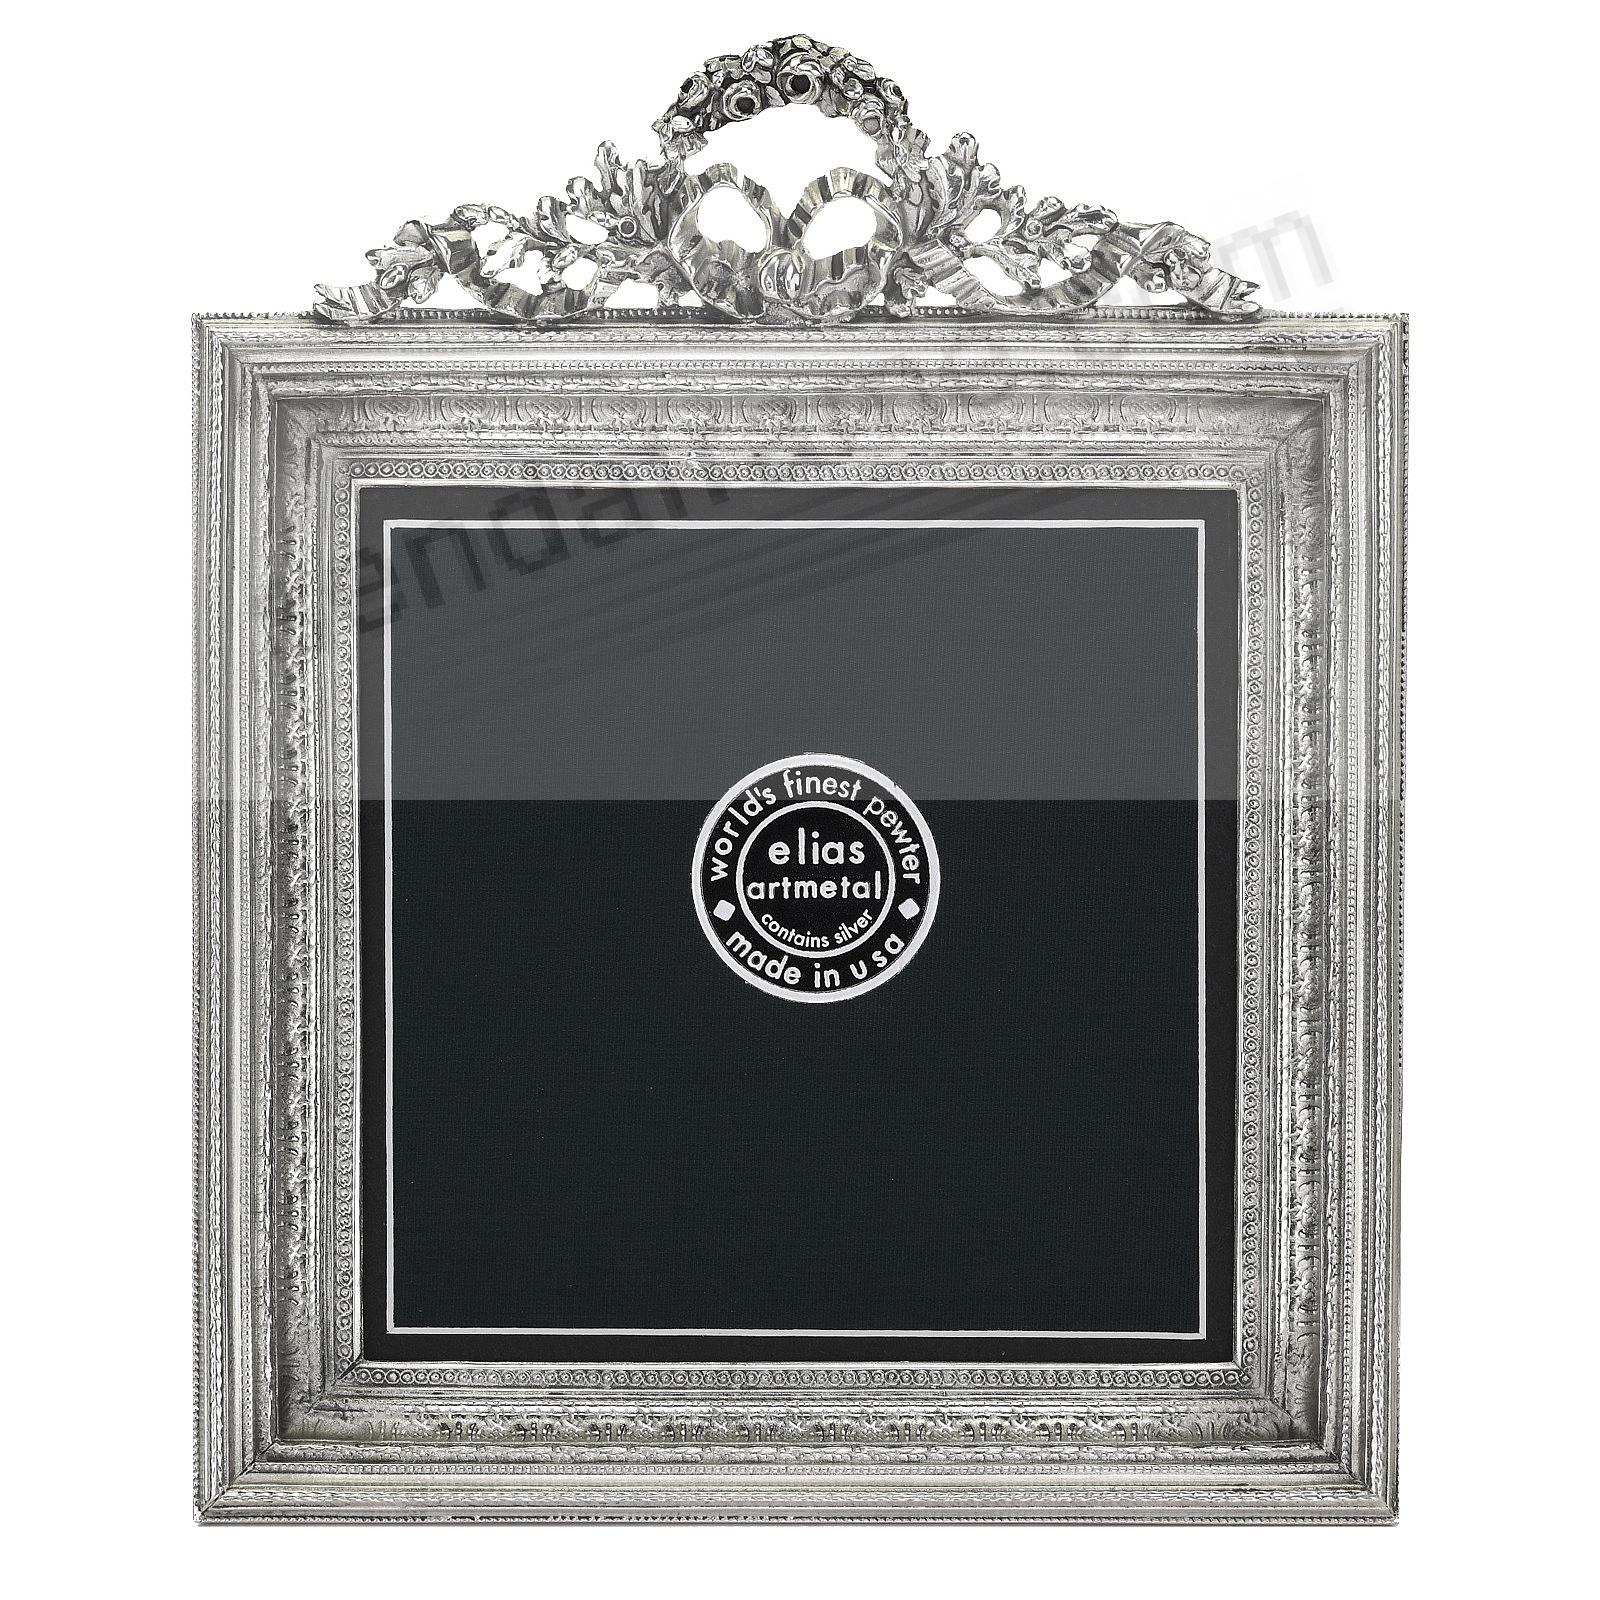 NEO-CLASSICAL SQUARE 5x5/4½x4½ Fine Silvered Pewter by Elias Artmetal®